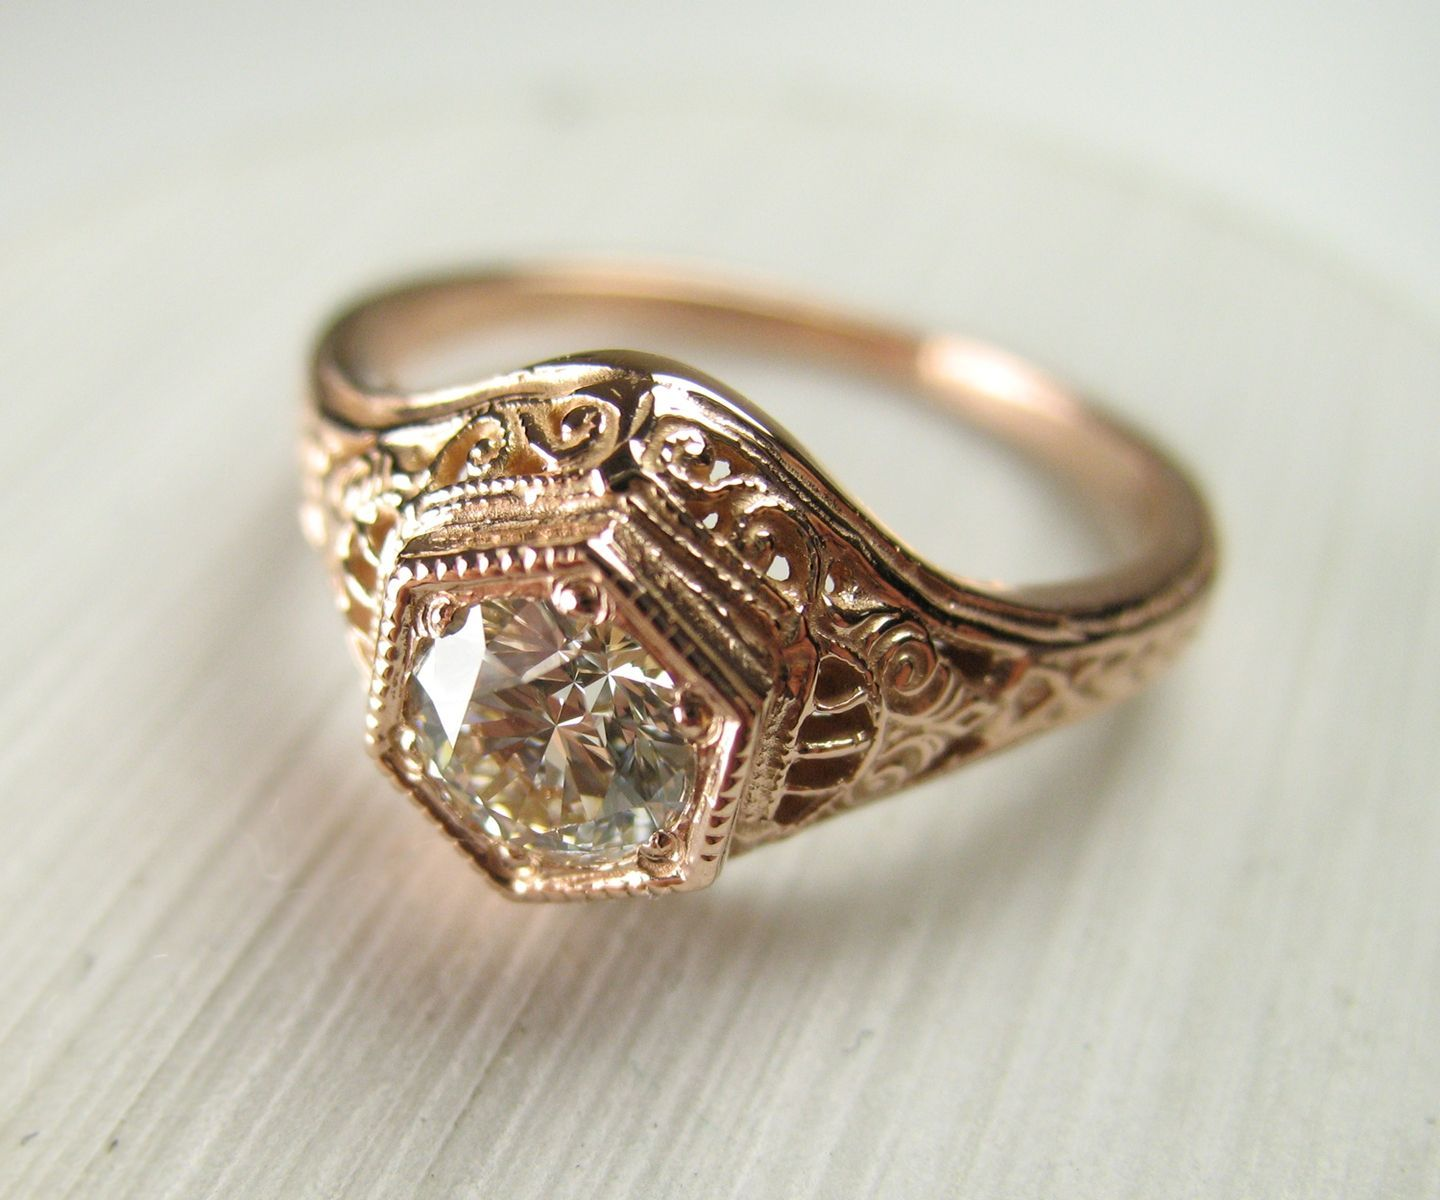 deco white diamond rings antique elegant nl engagement in gold vintage cut rg emerald rose ring jewelry art wedding with